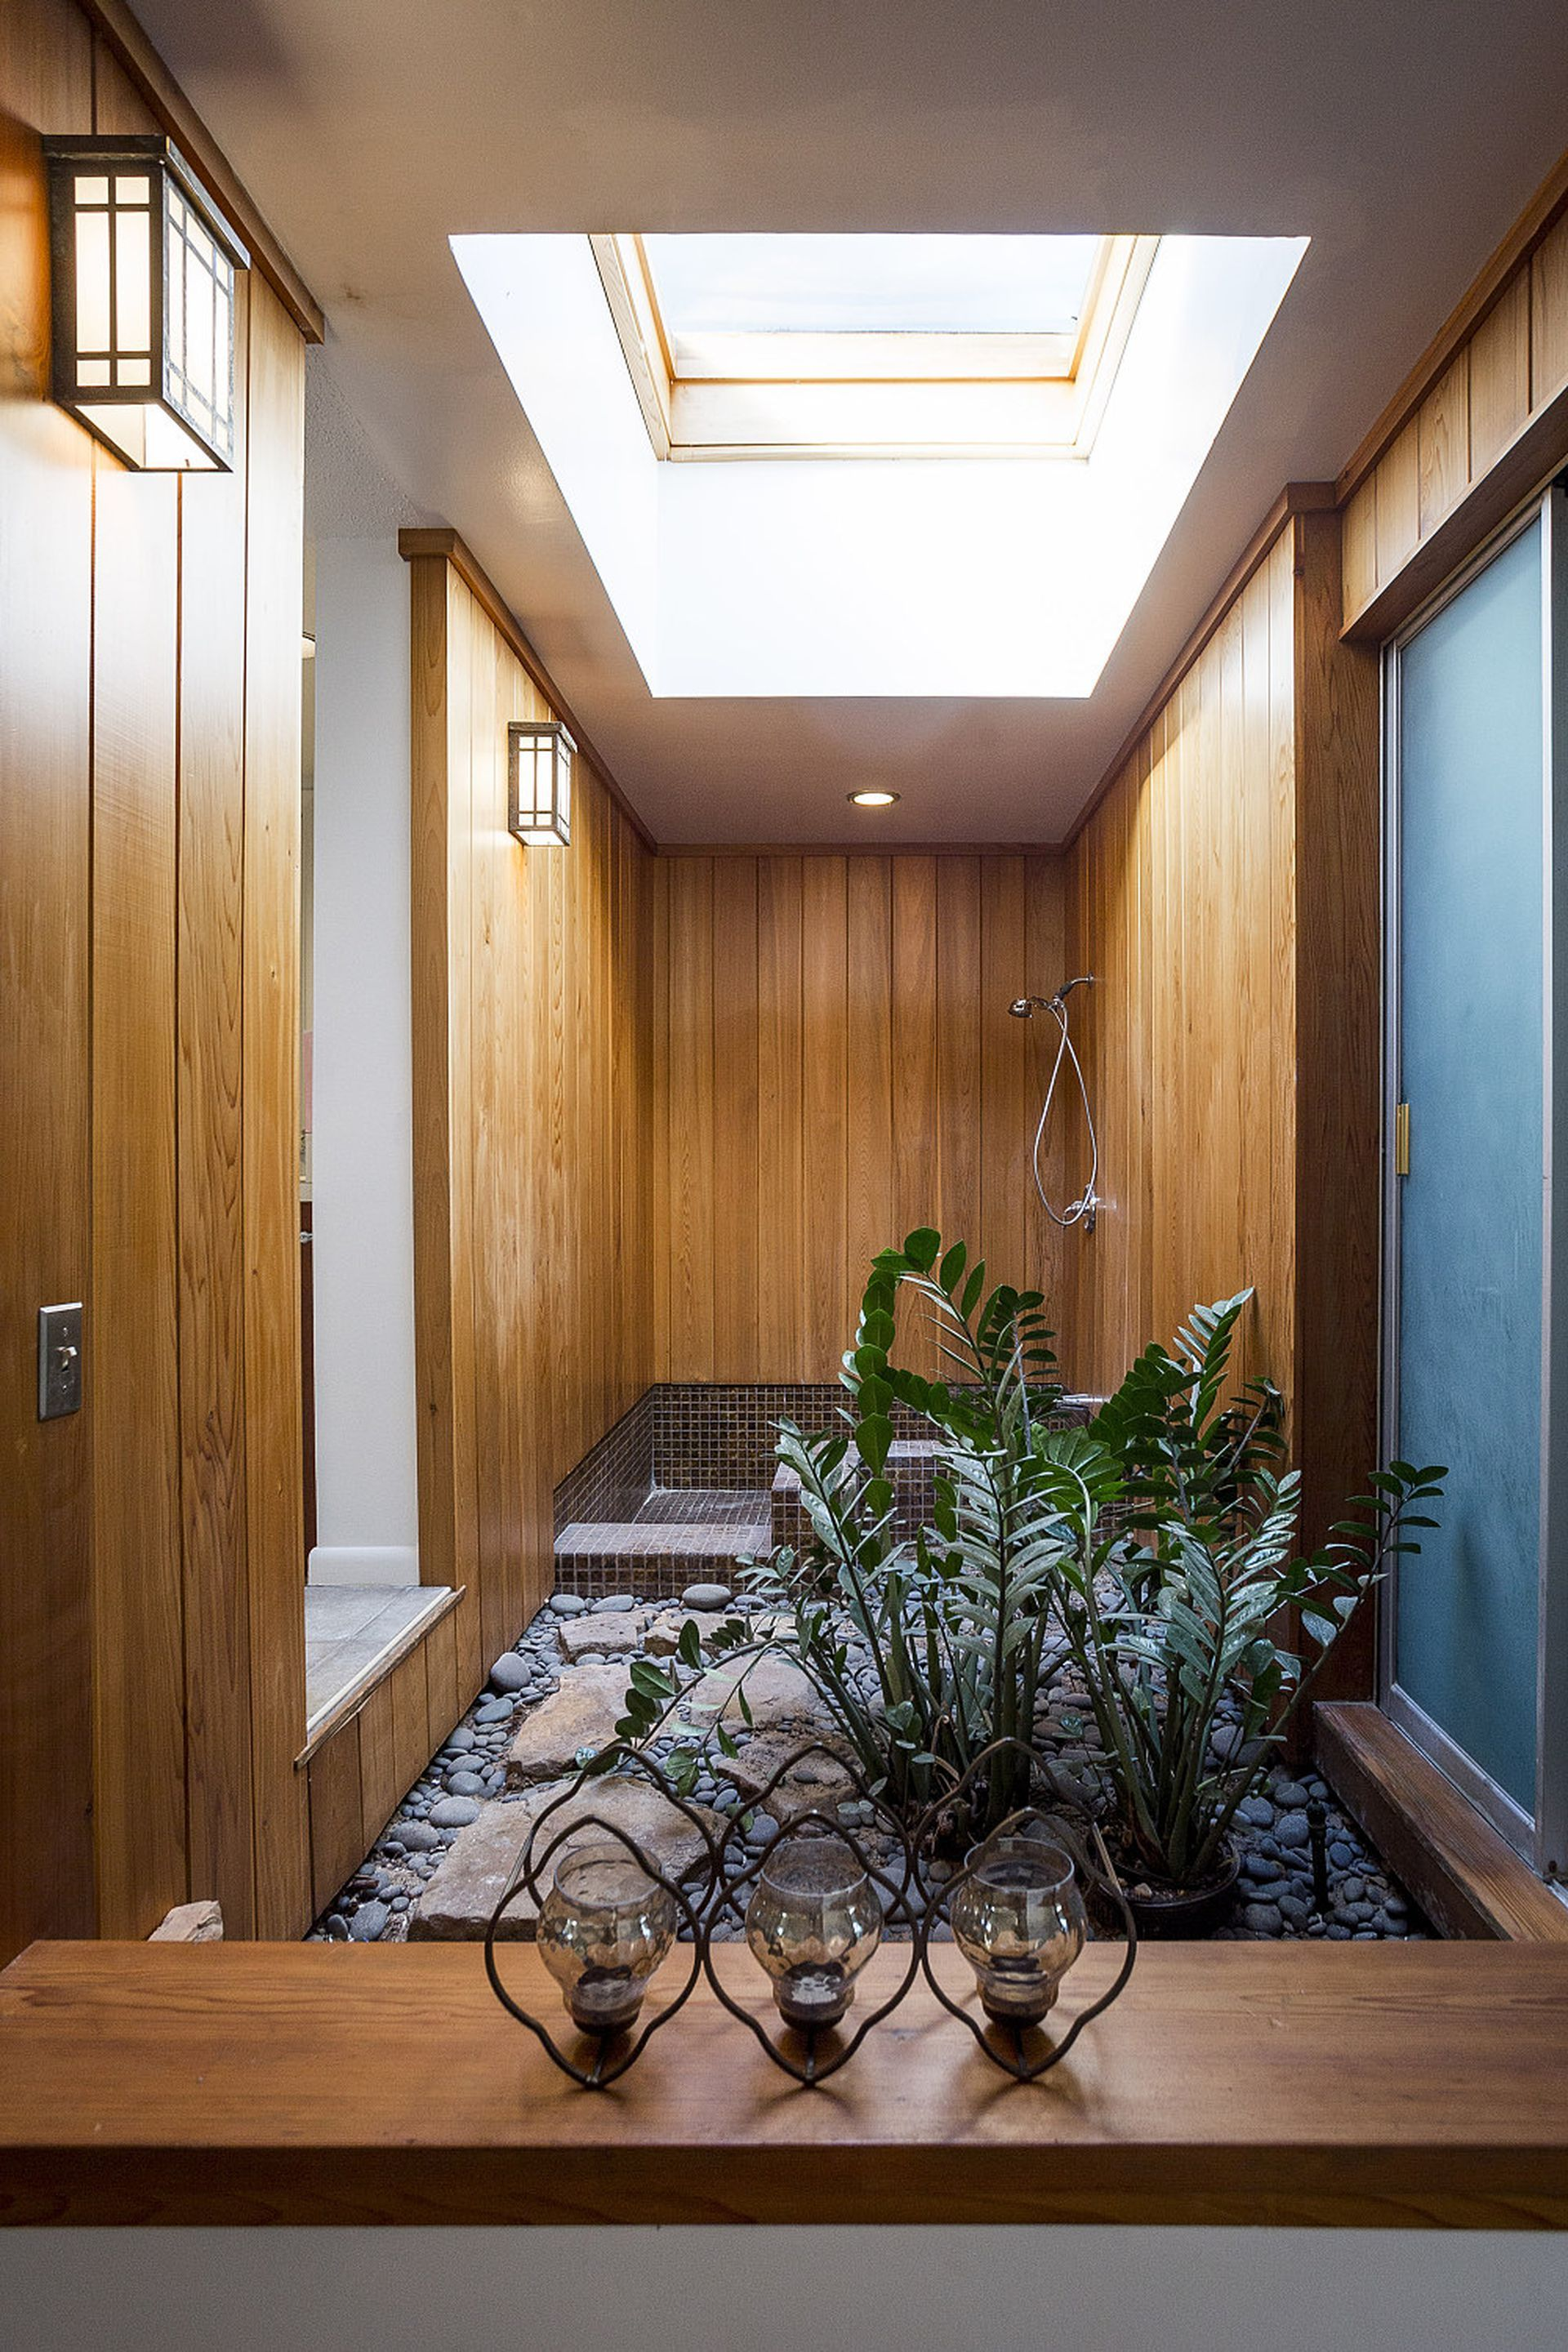 Japanese Inspired 60s Home With Koi Pond Asks 895k Home